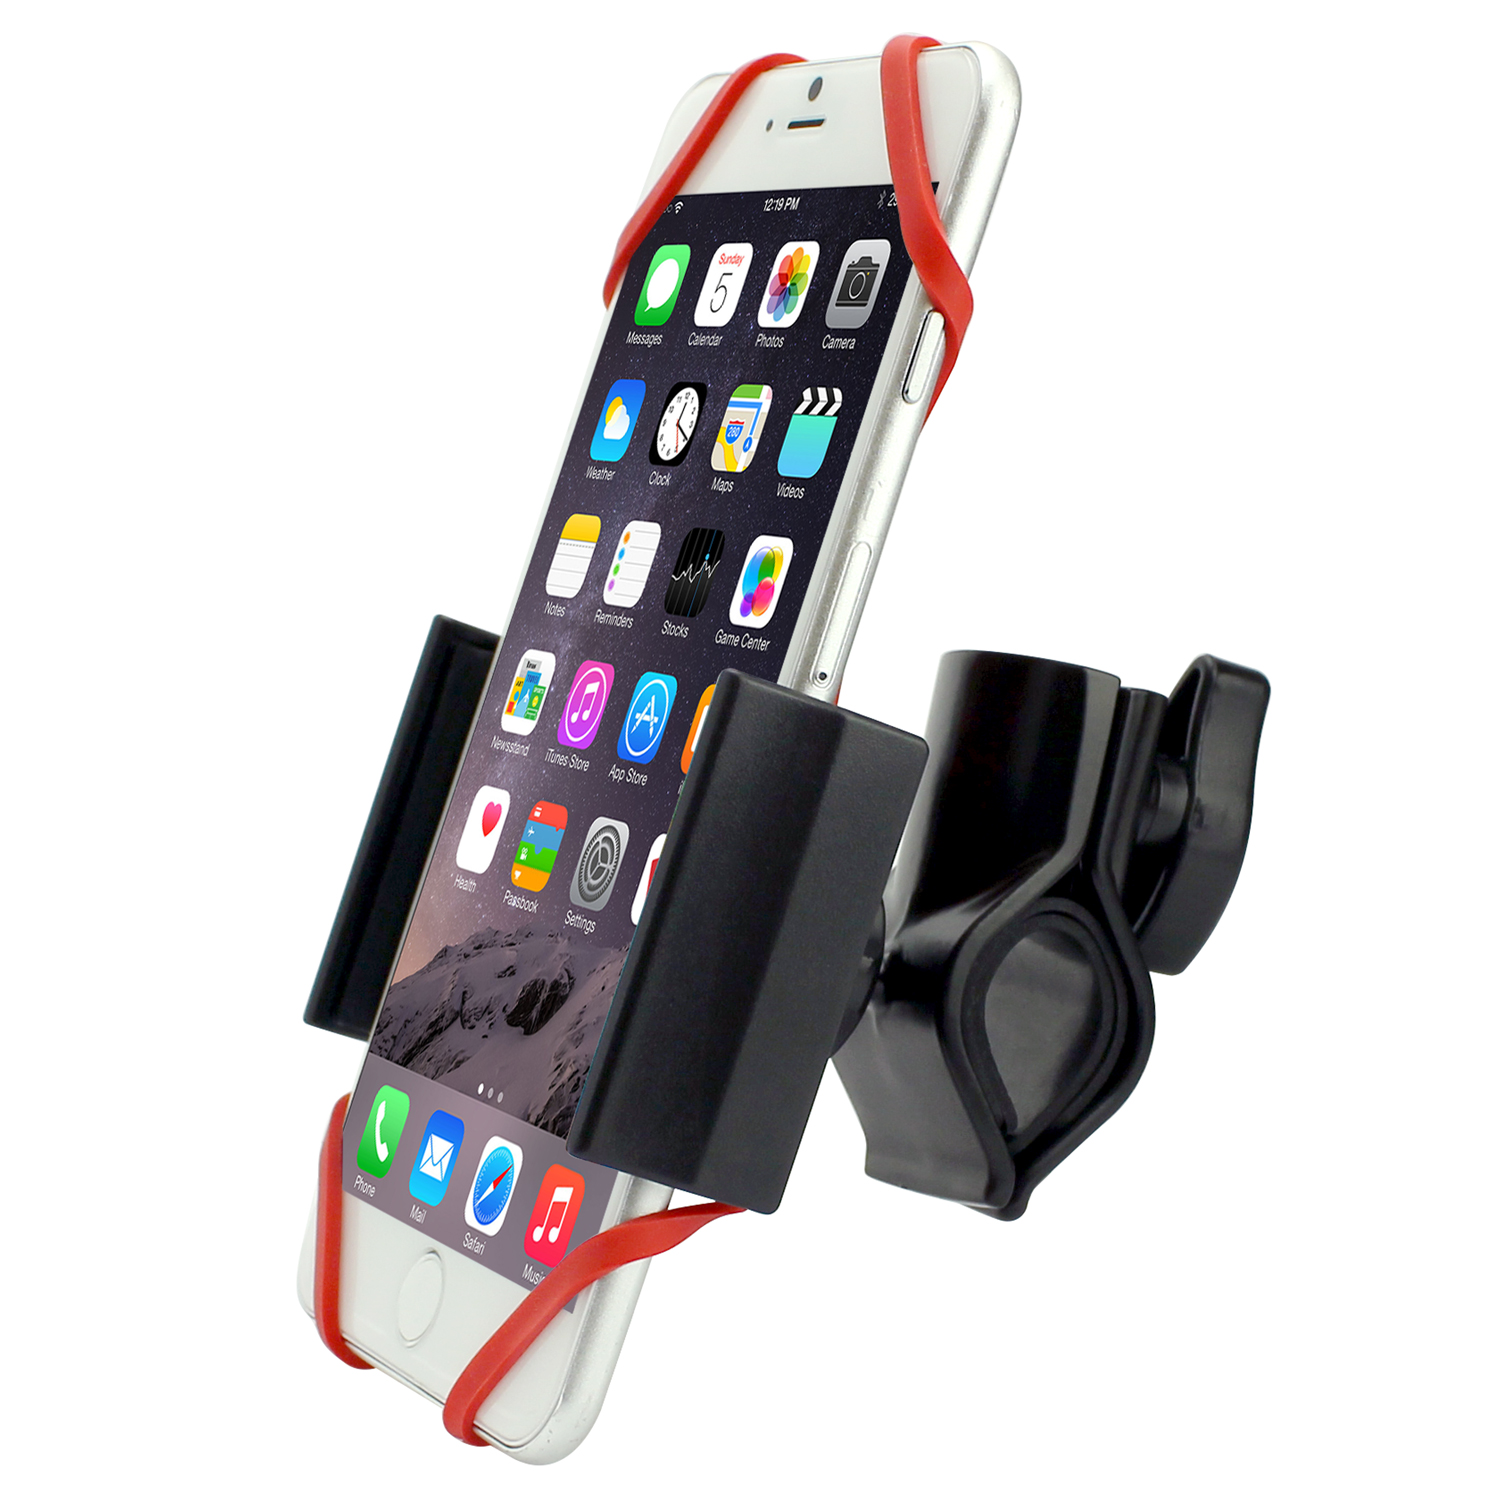 Huawei Honor 5X Bike Phone Mount Adjustable Black